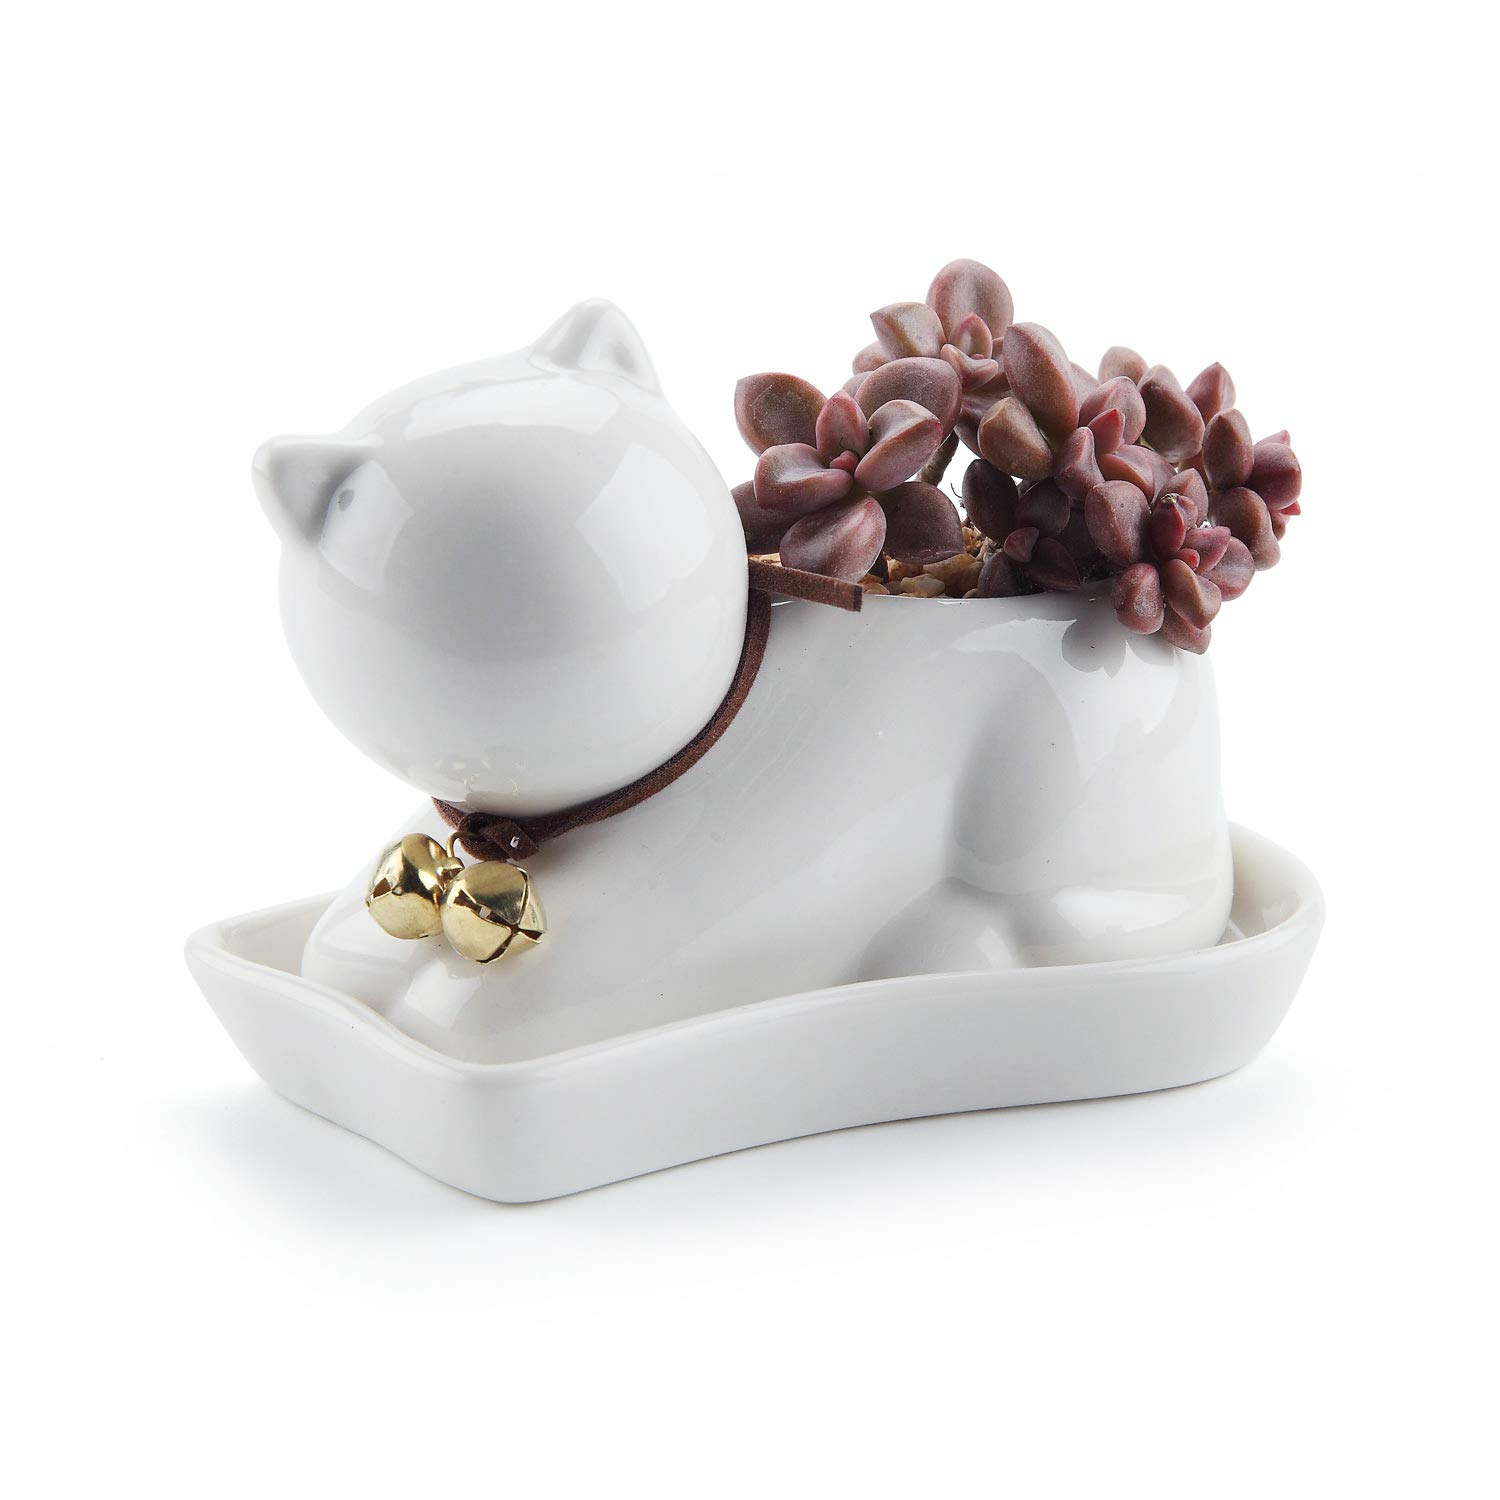 T4U Lazy Cat Design Ceramic Pot, Succulent Plant Planter Cactus Flower Container Porcelain Holder Home Office Decoration with Golden Bell and Tray – Pack of 1